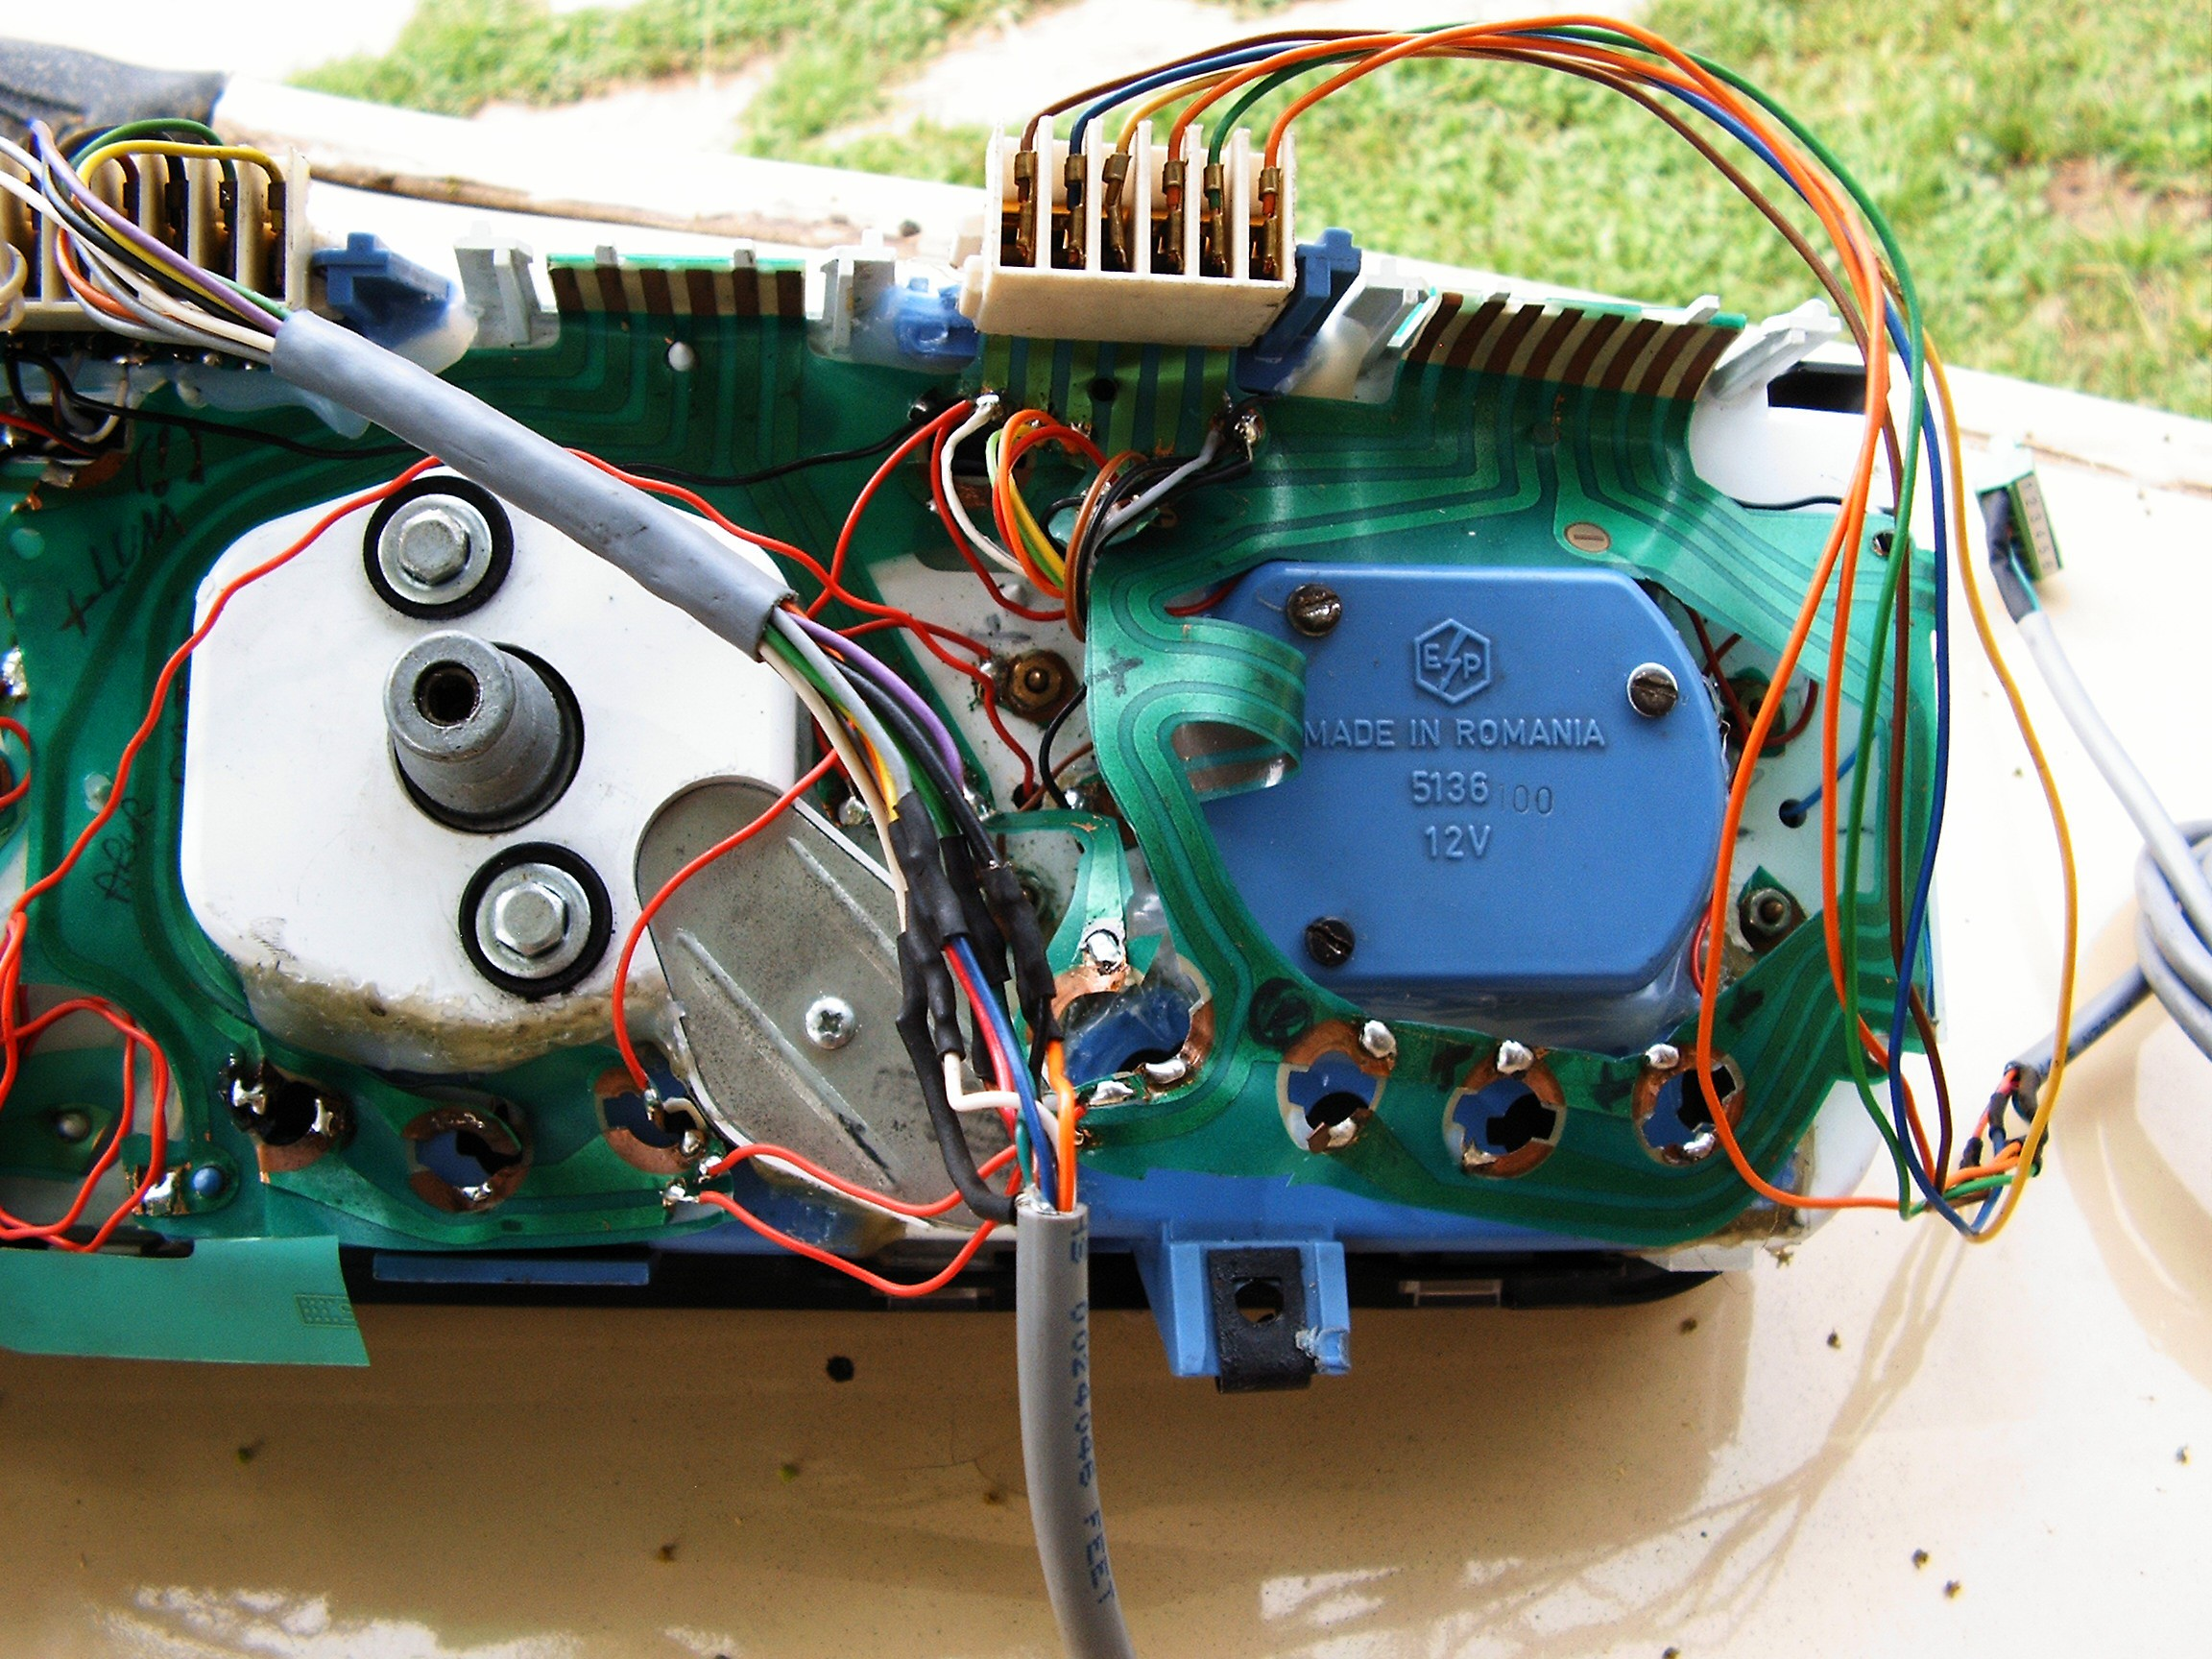 Rebuilding Gauges And Dials Details Led Rpm Meter Circuit Diagram For Automobiles Speed Extra Two Close Up View